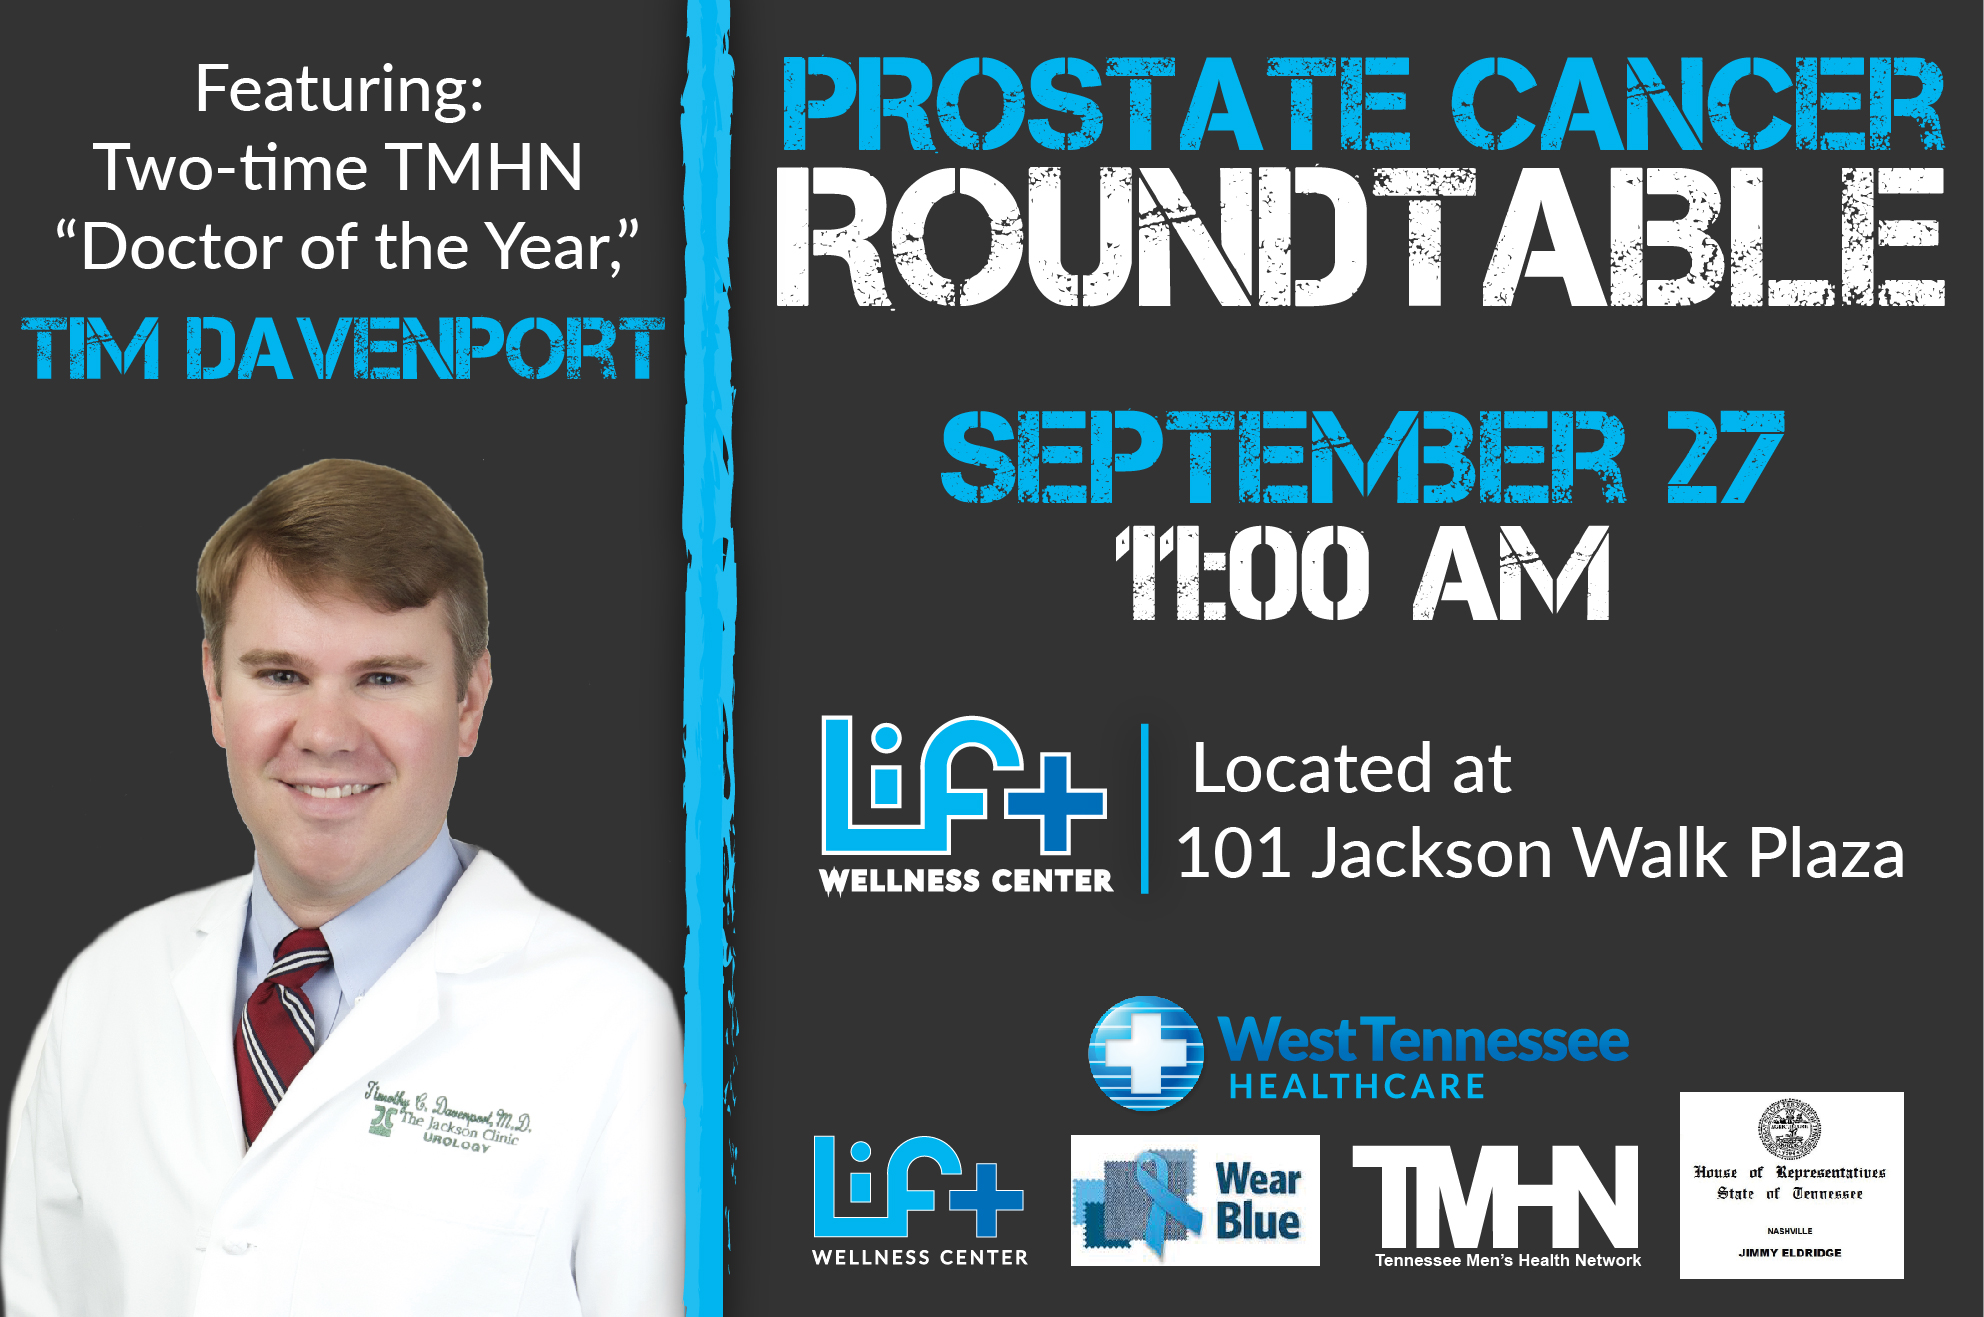 TN Men's Health Network: Prostate Cancer Round Table